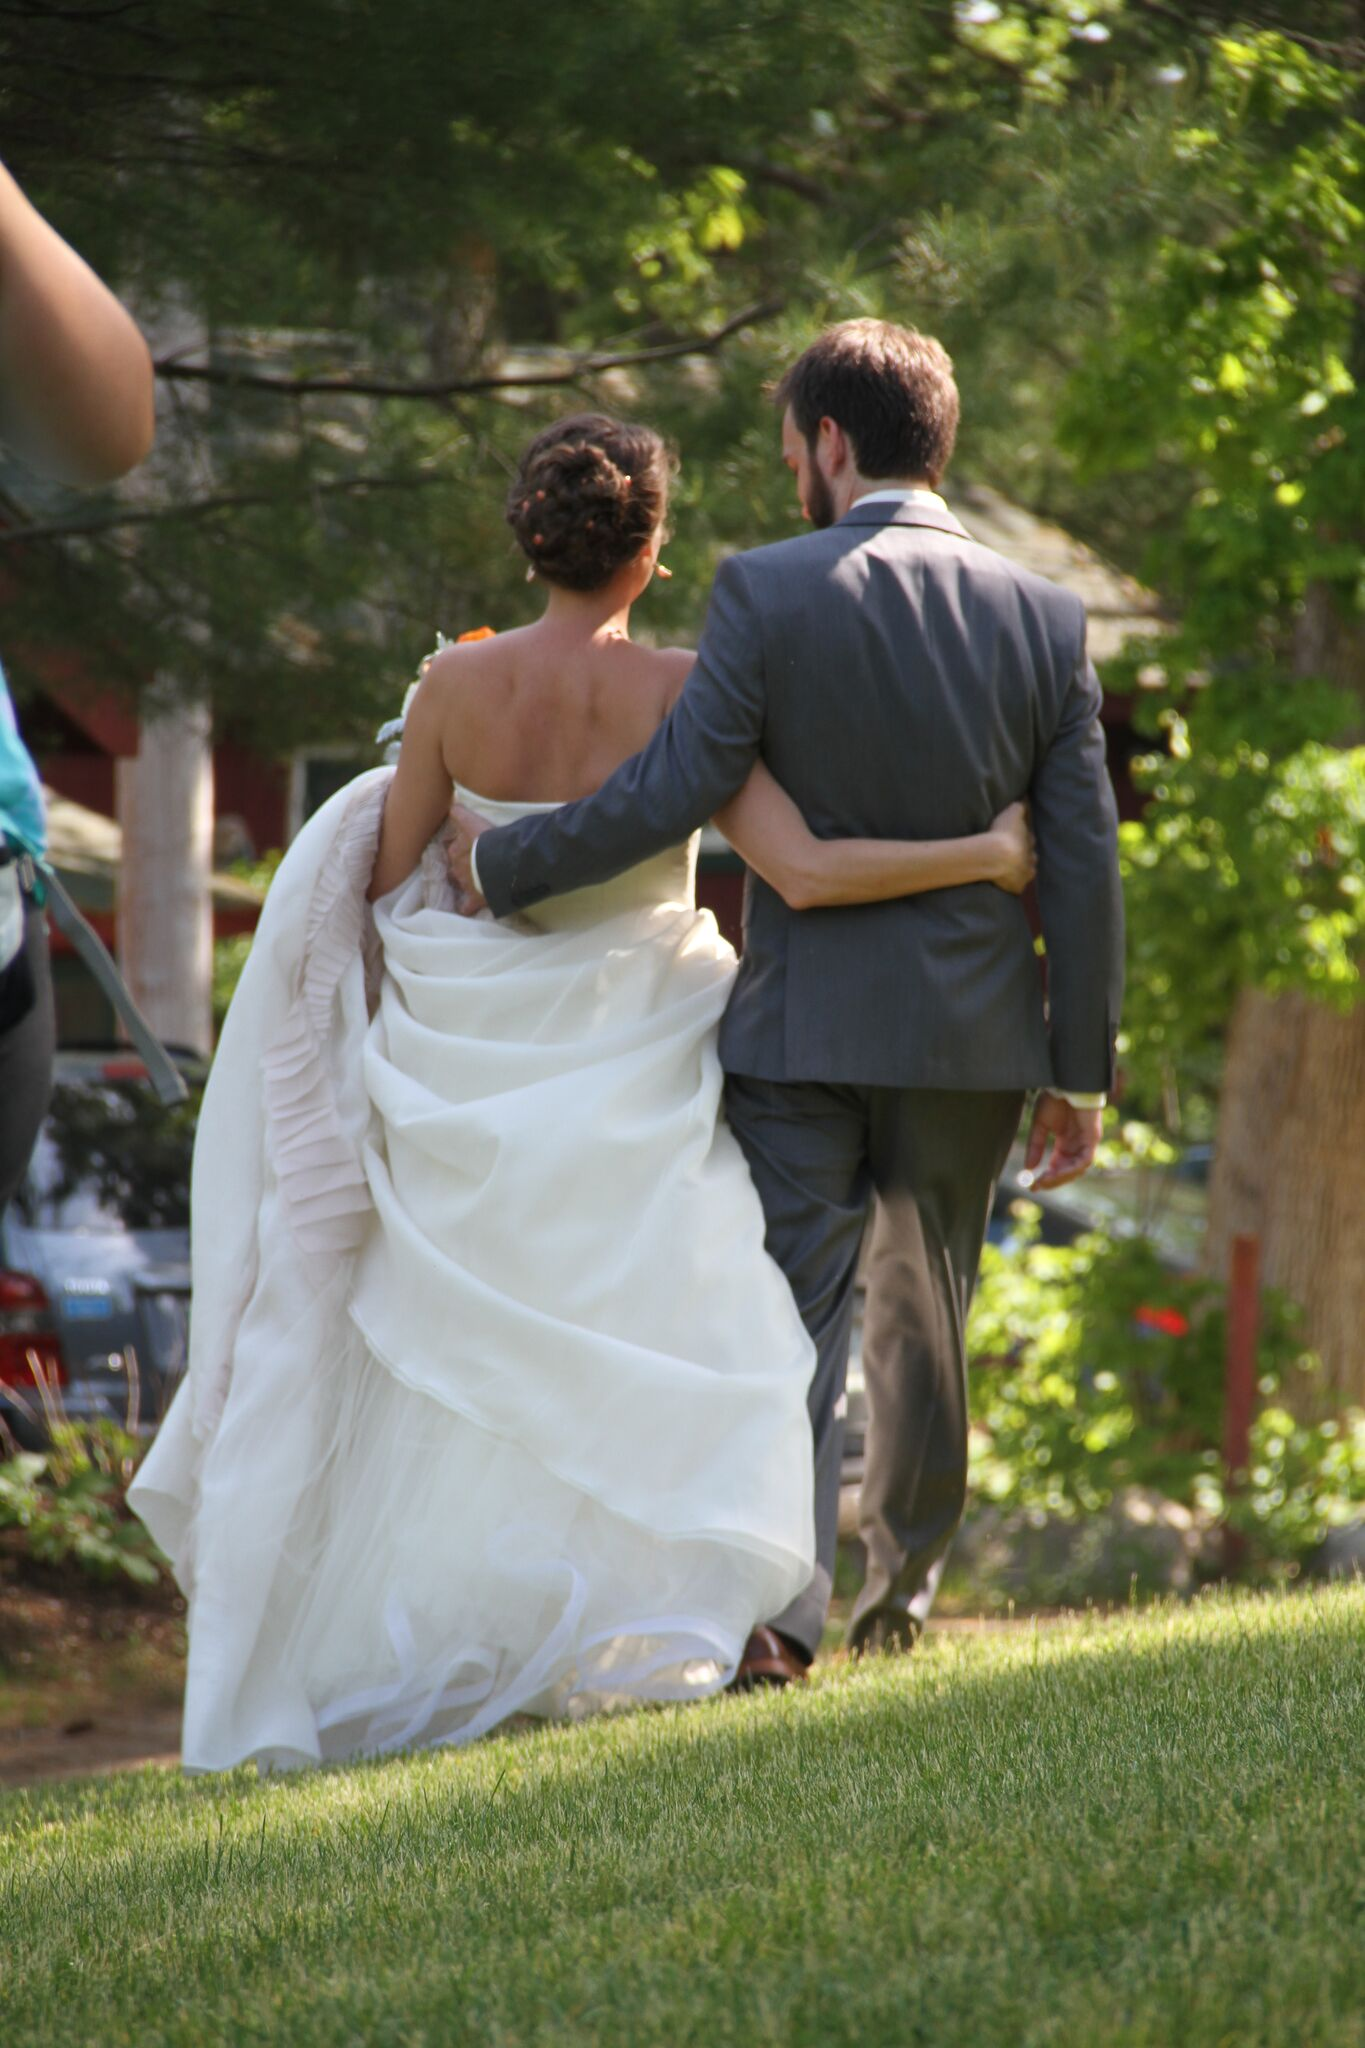 Brus O'Shea Wedding May 2015_7588_preview.jpeg